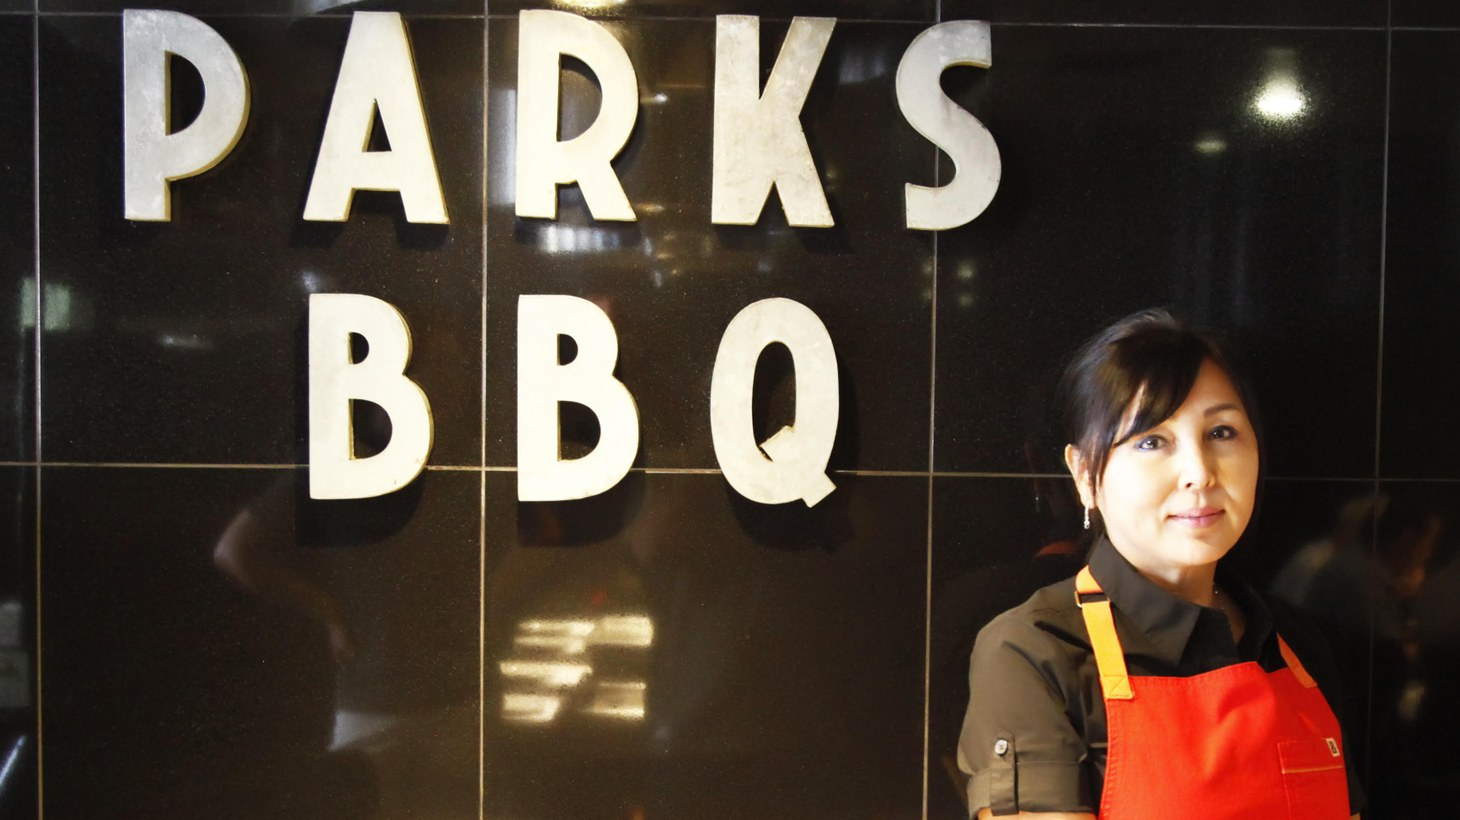 With two kids in tow, Jenee Kim moved from Philadelphia to Los Angeles to open Park's BBQ, a concept popular in Seoul with the same name.